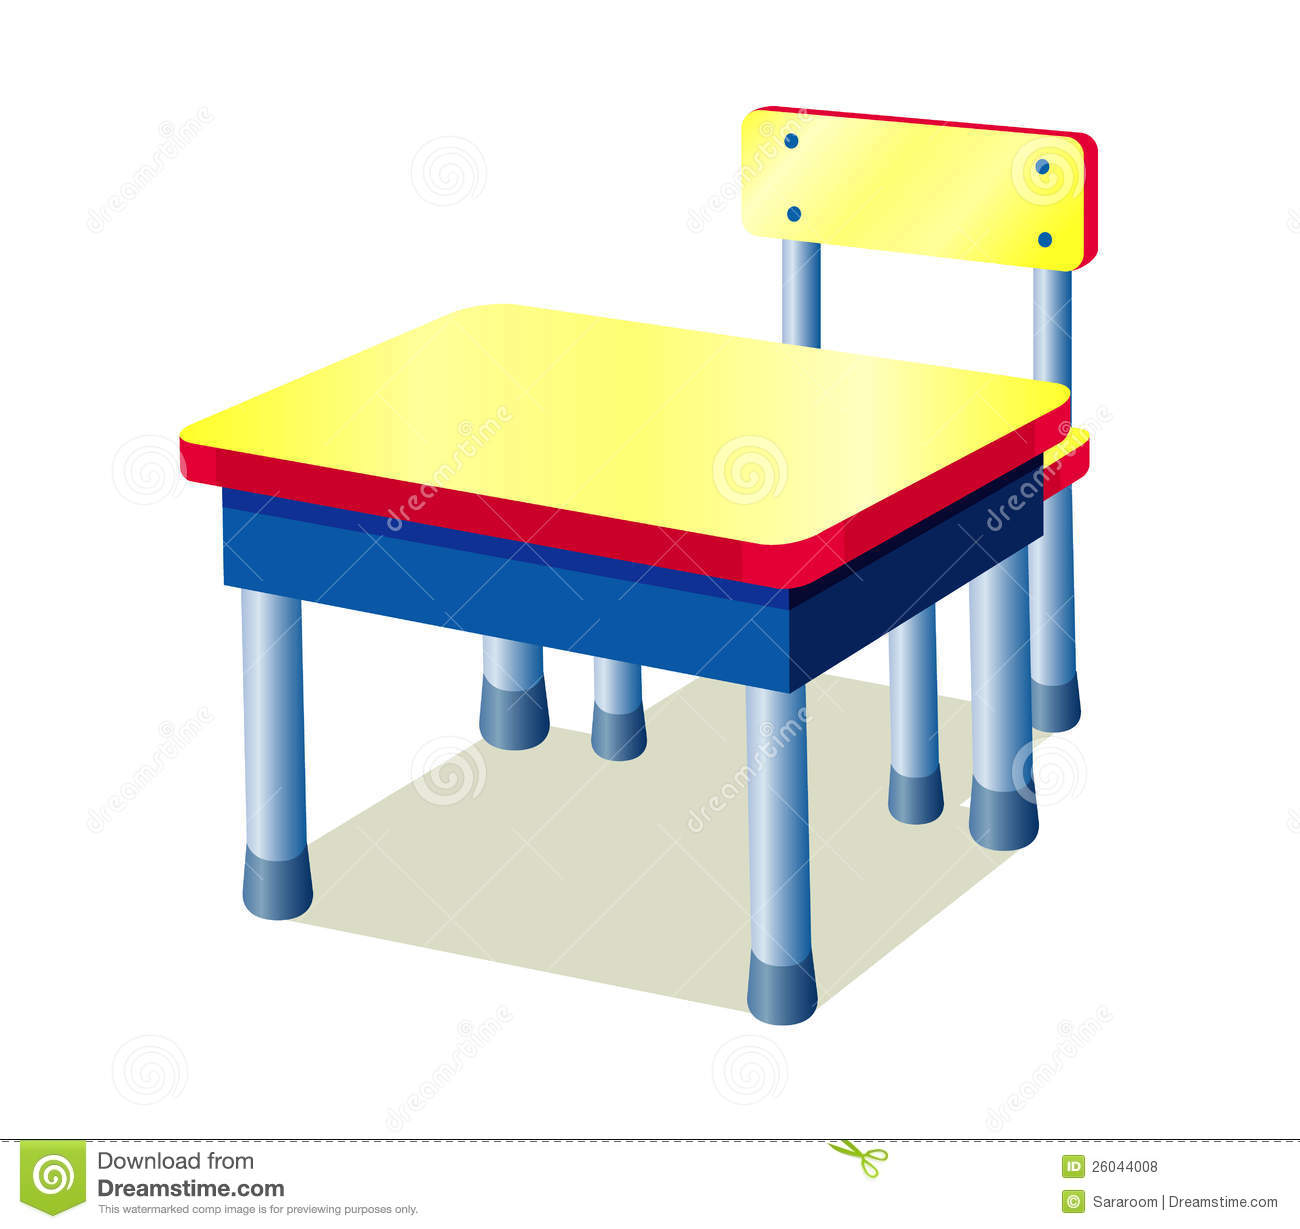 School table | Clipart Panda - Free Clipart Images for School Table Clipart  177nar